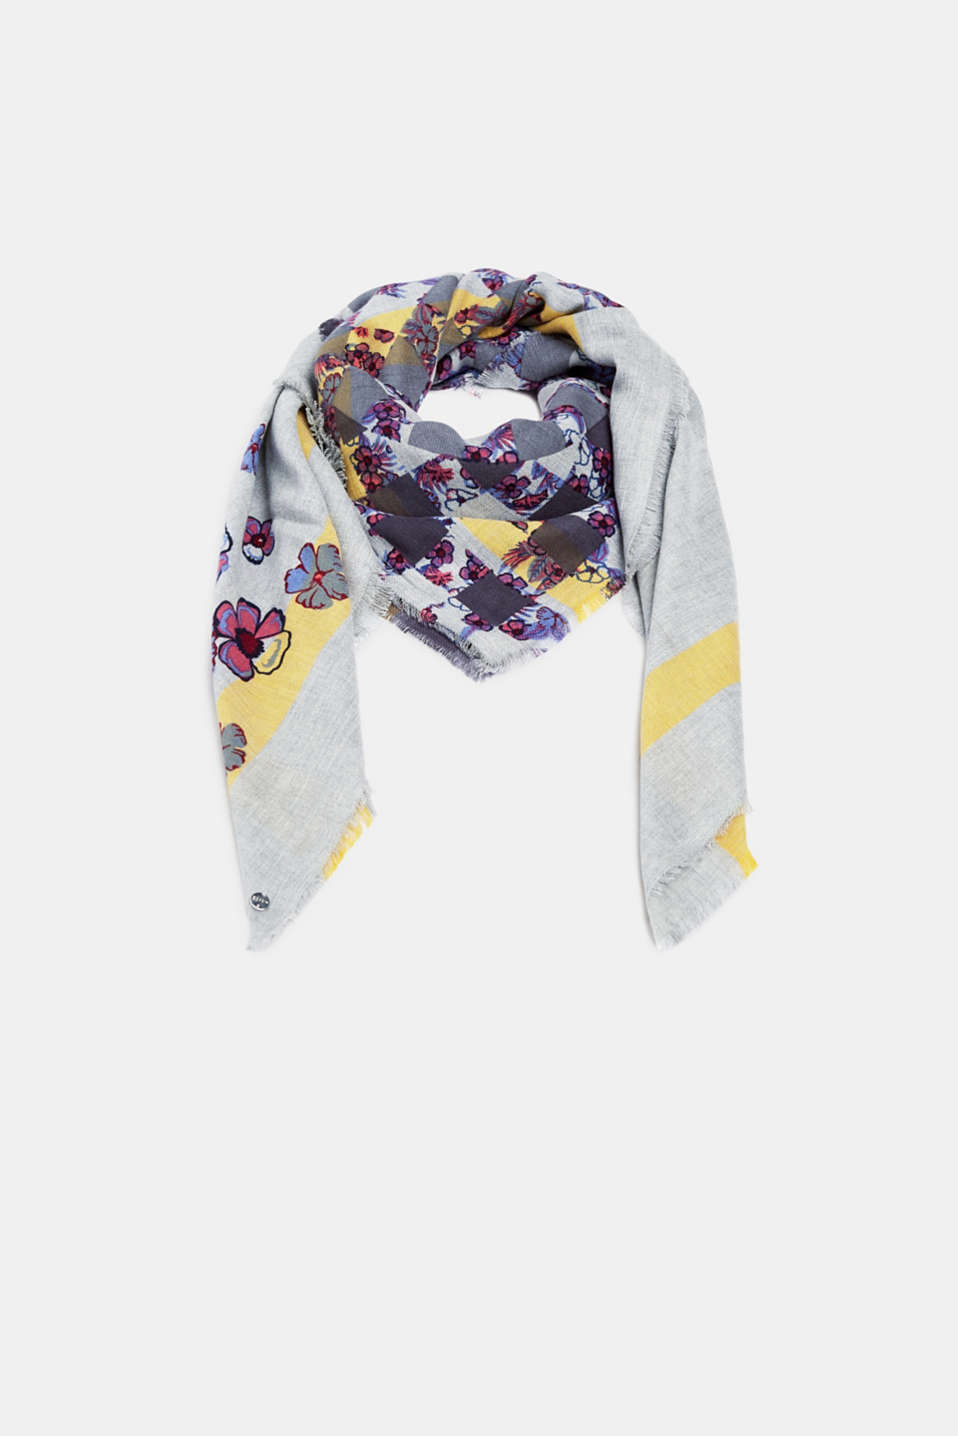 Esprit - Woven scarf with a floral print, 100% cotton